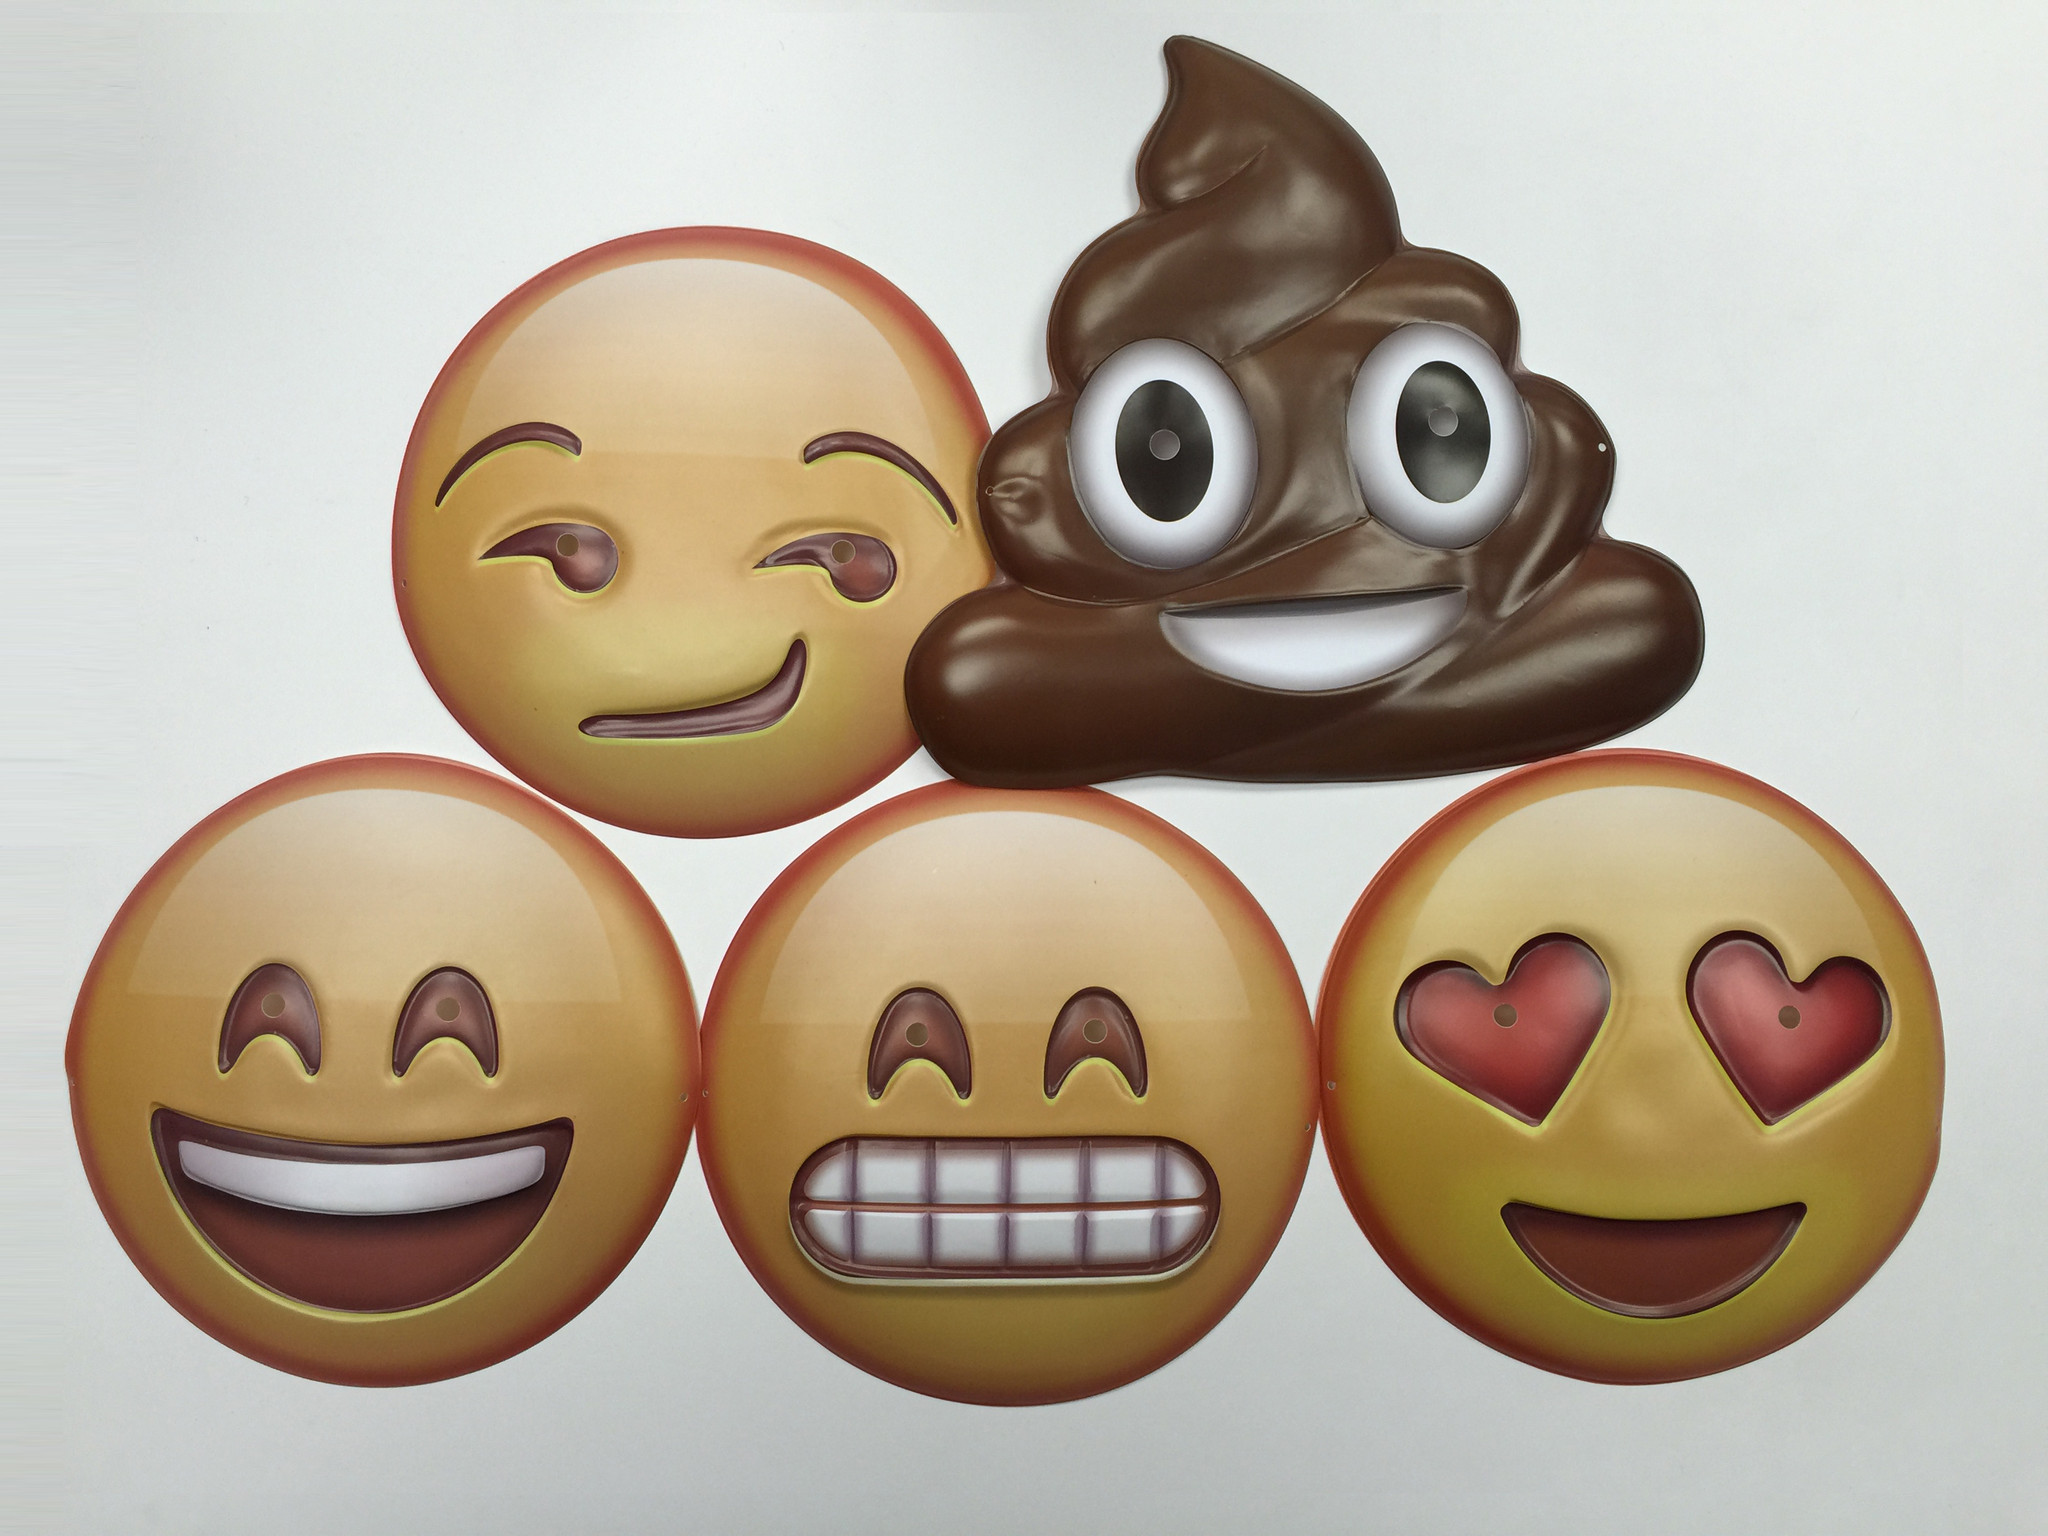 These Emoji Masks Are The Best Halloween Costumes $5 Can Buy ...